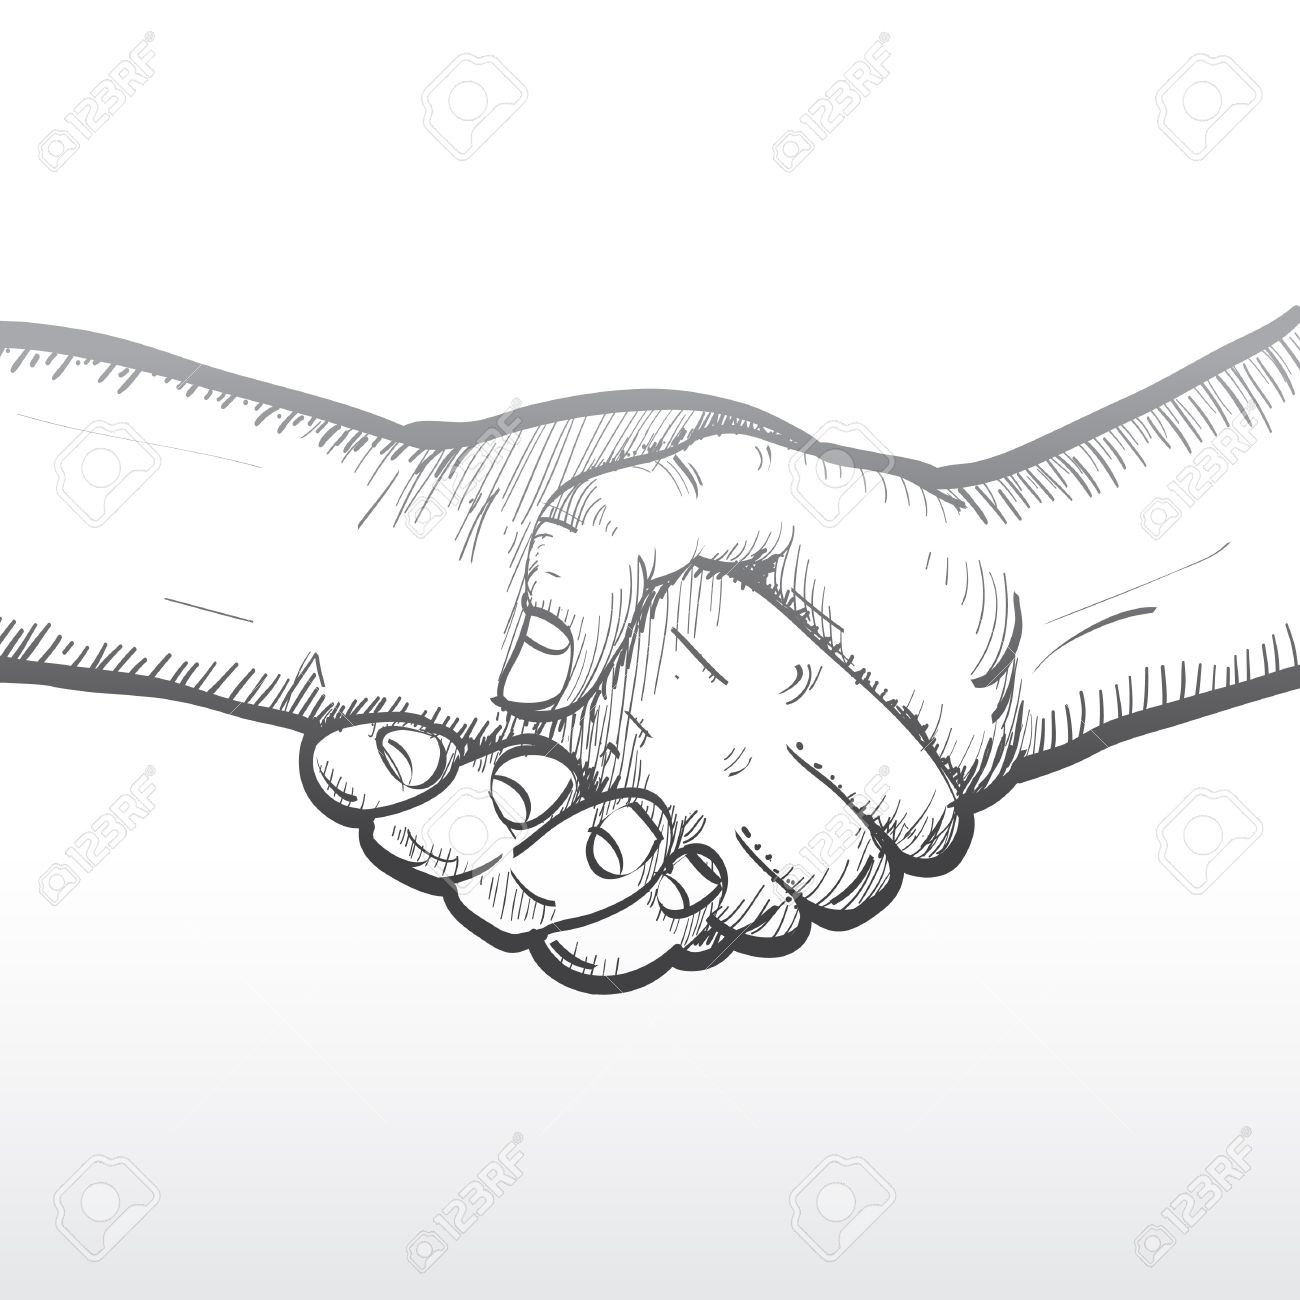 1300x1300 Sketch Of Two Shaking Hands Royalty Free Cliparts, Vectors,